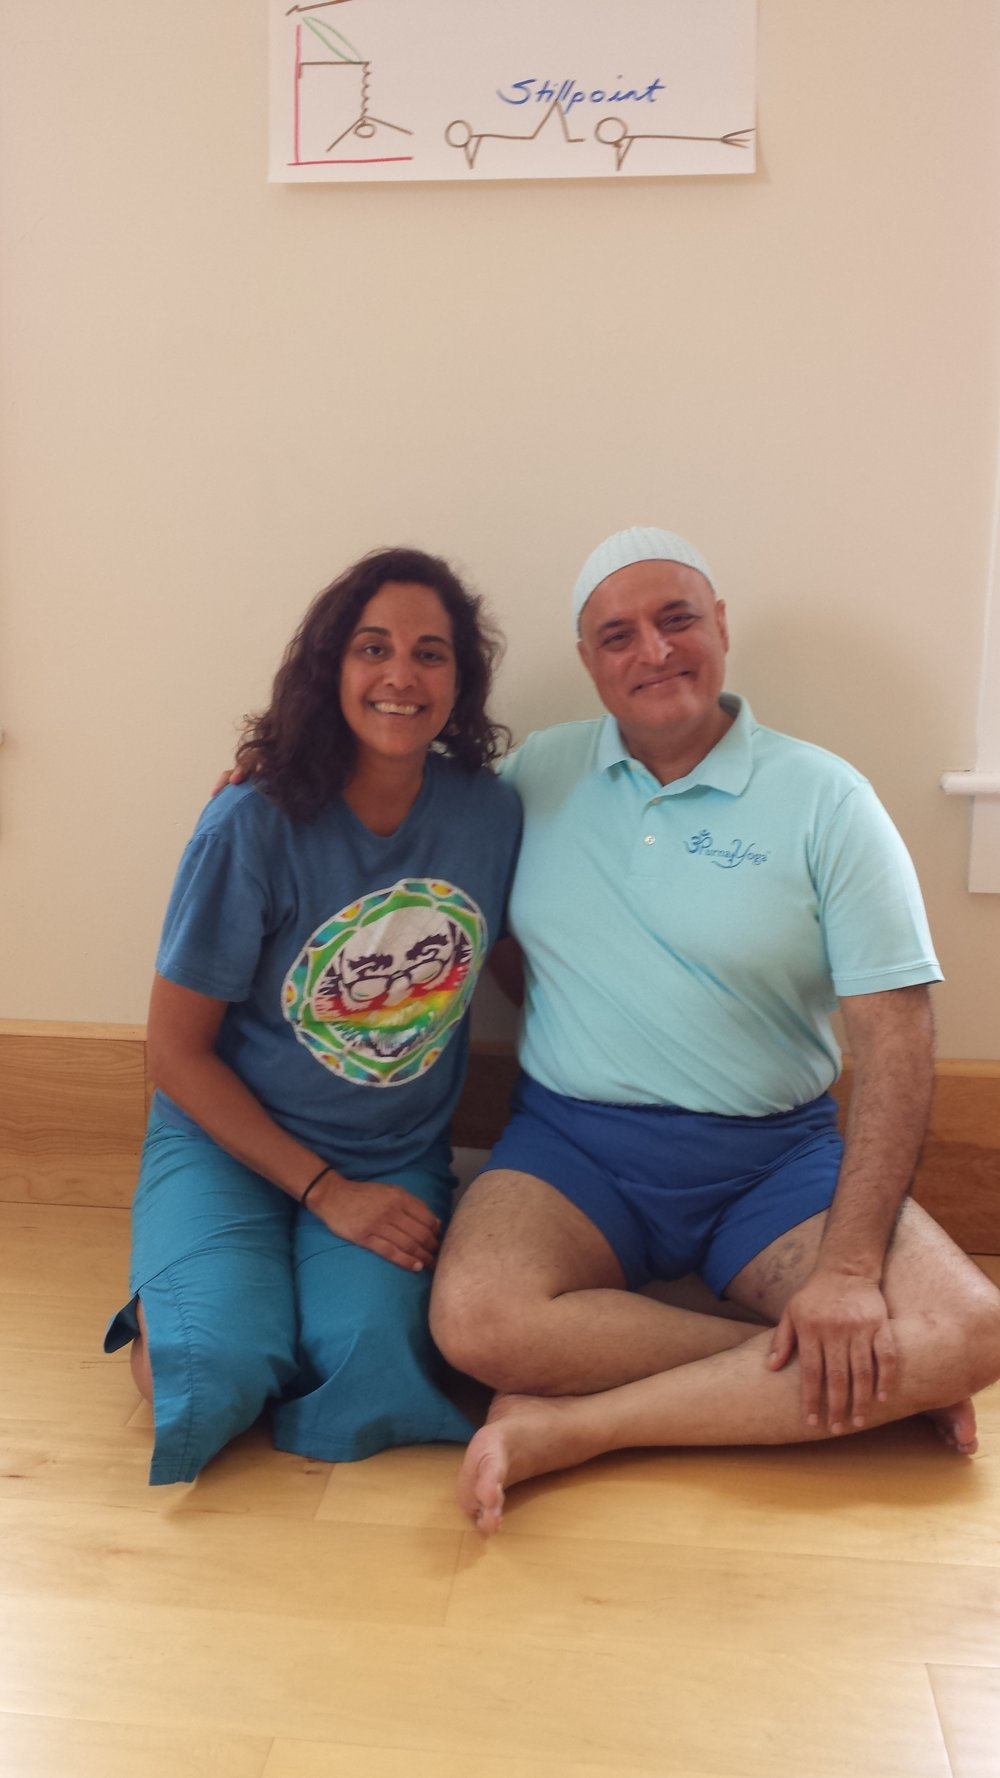 Lisa Amani with her teacher Aadil Palkhivala in 2015